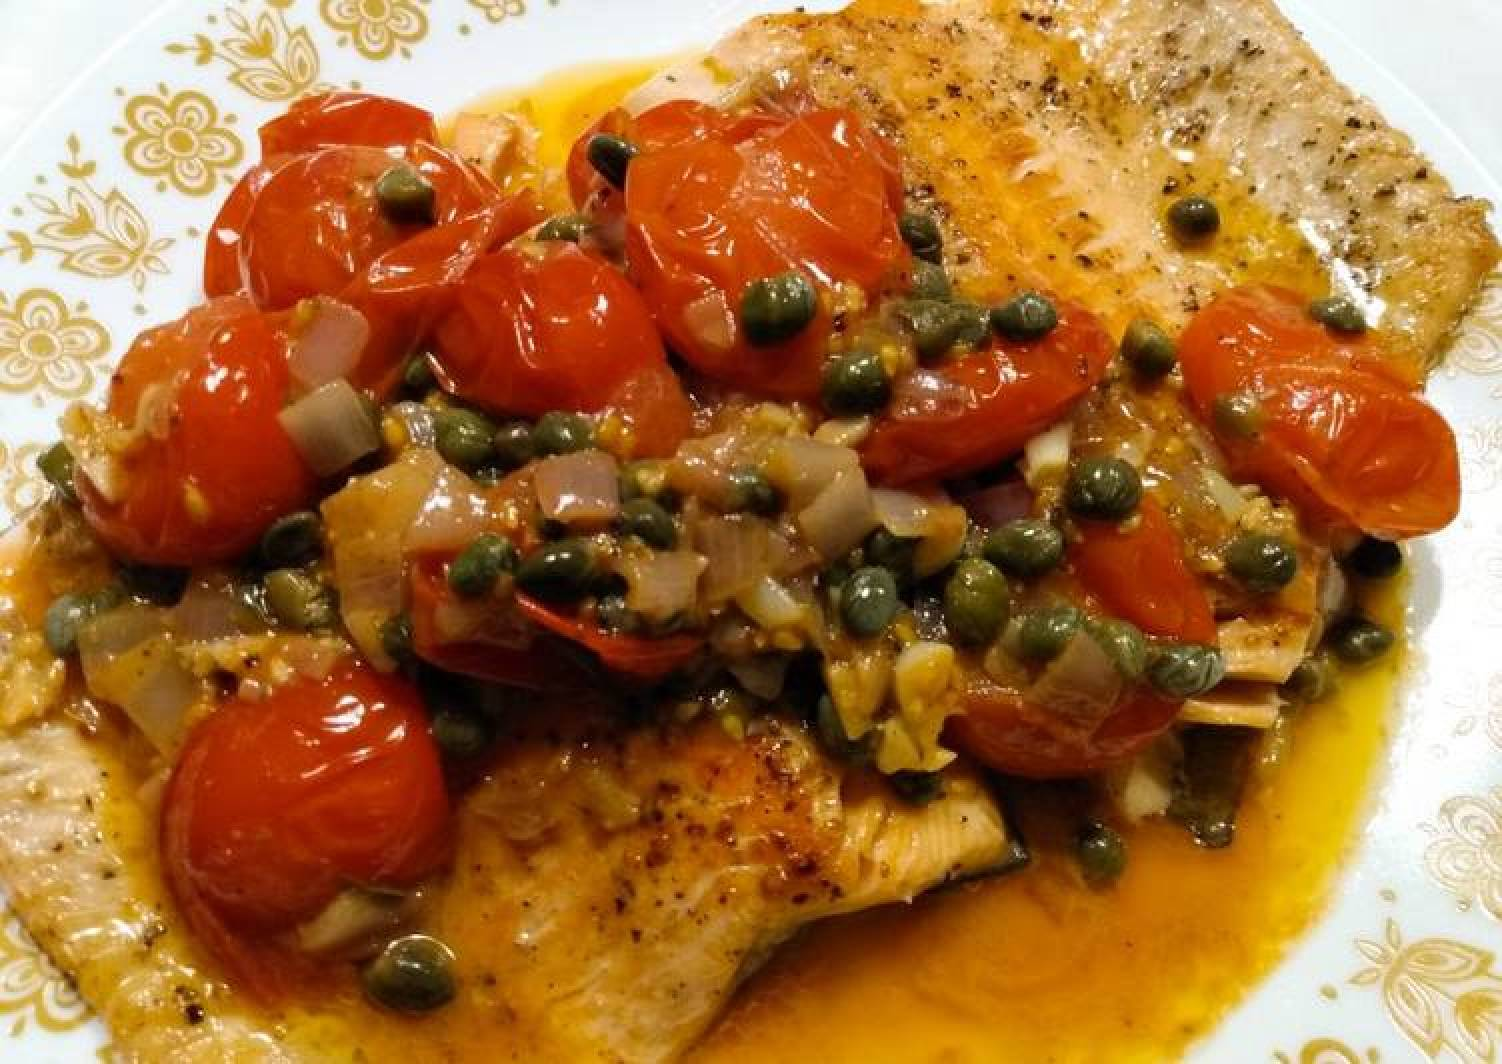 Steelhead trout with spicy tomato and caper sauce